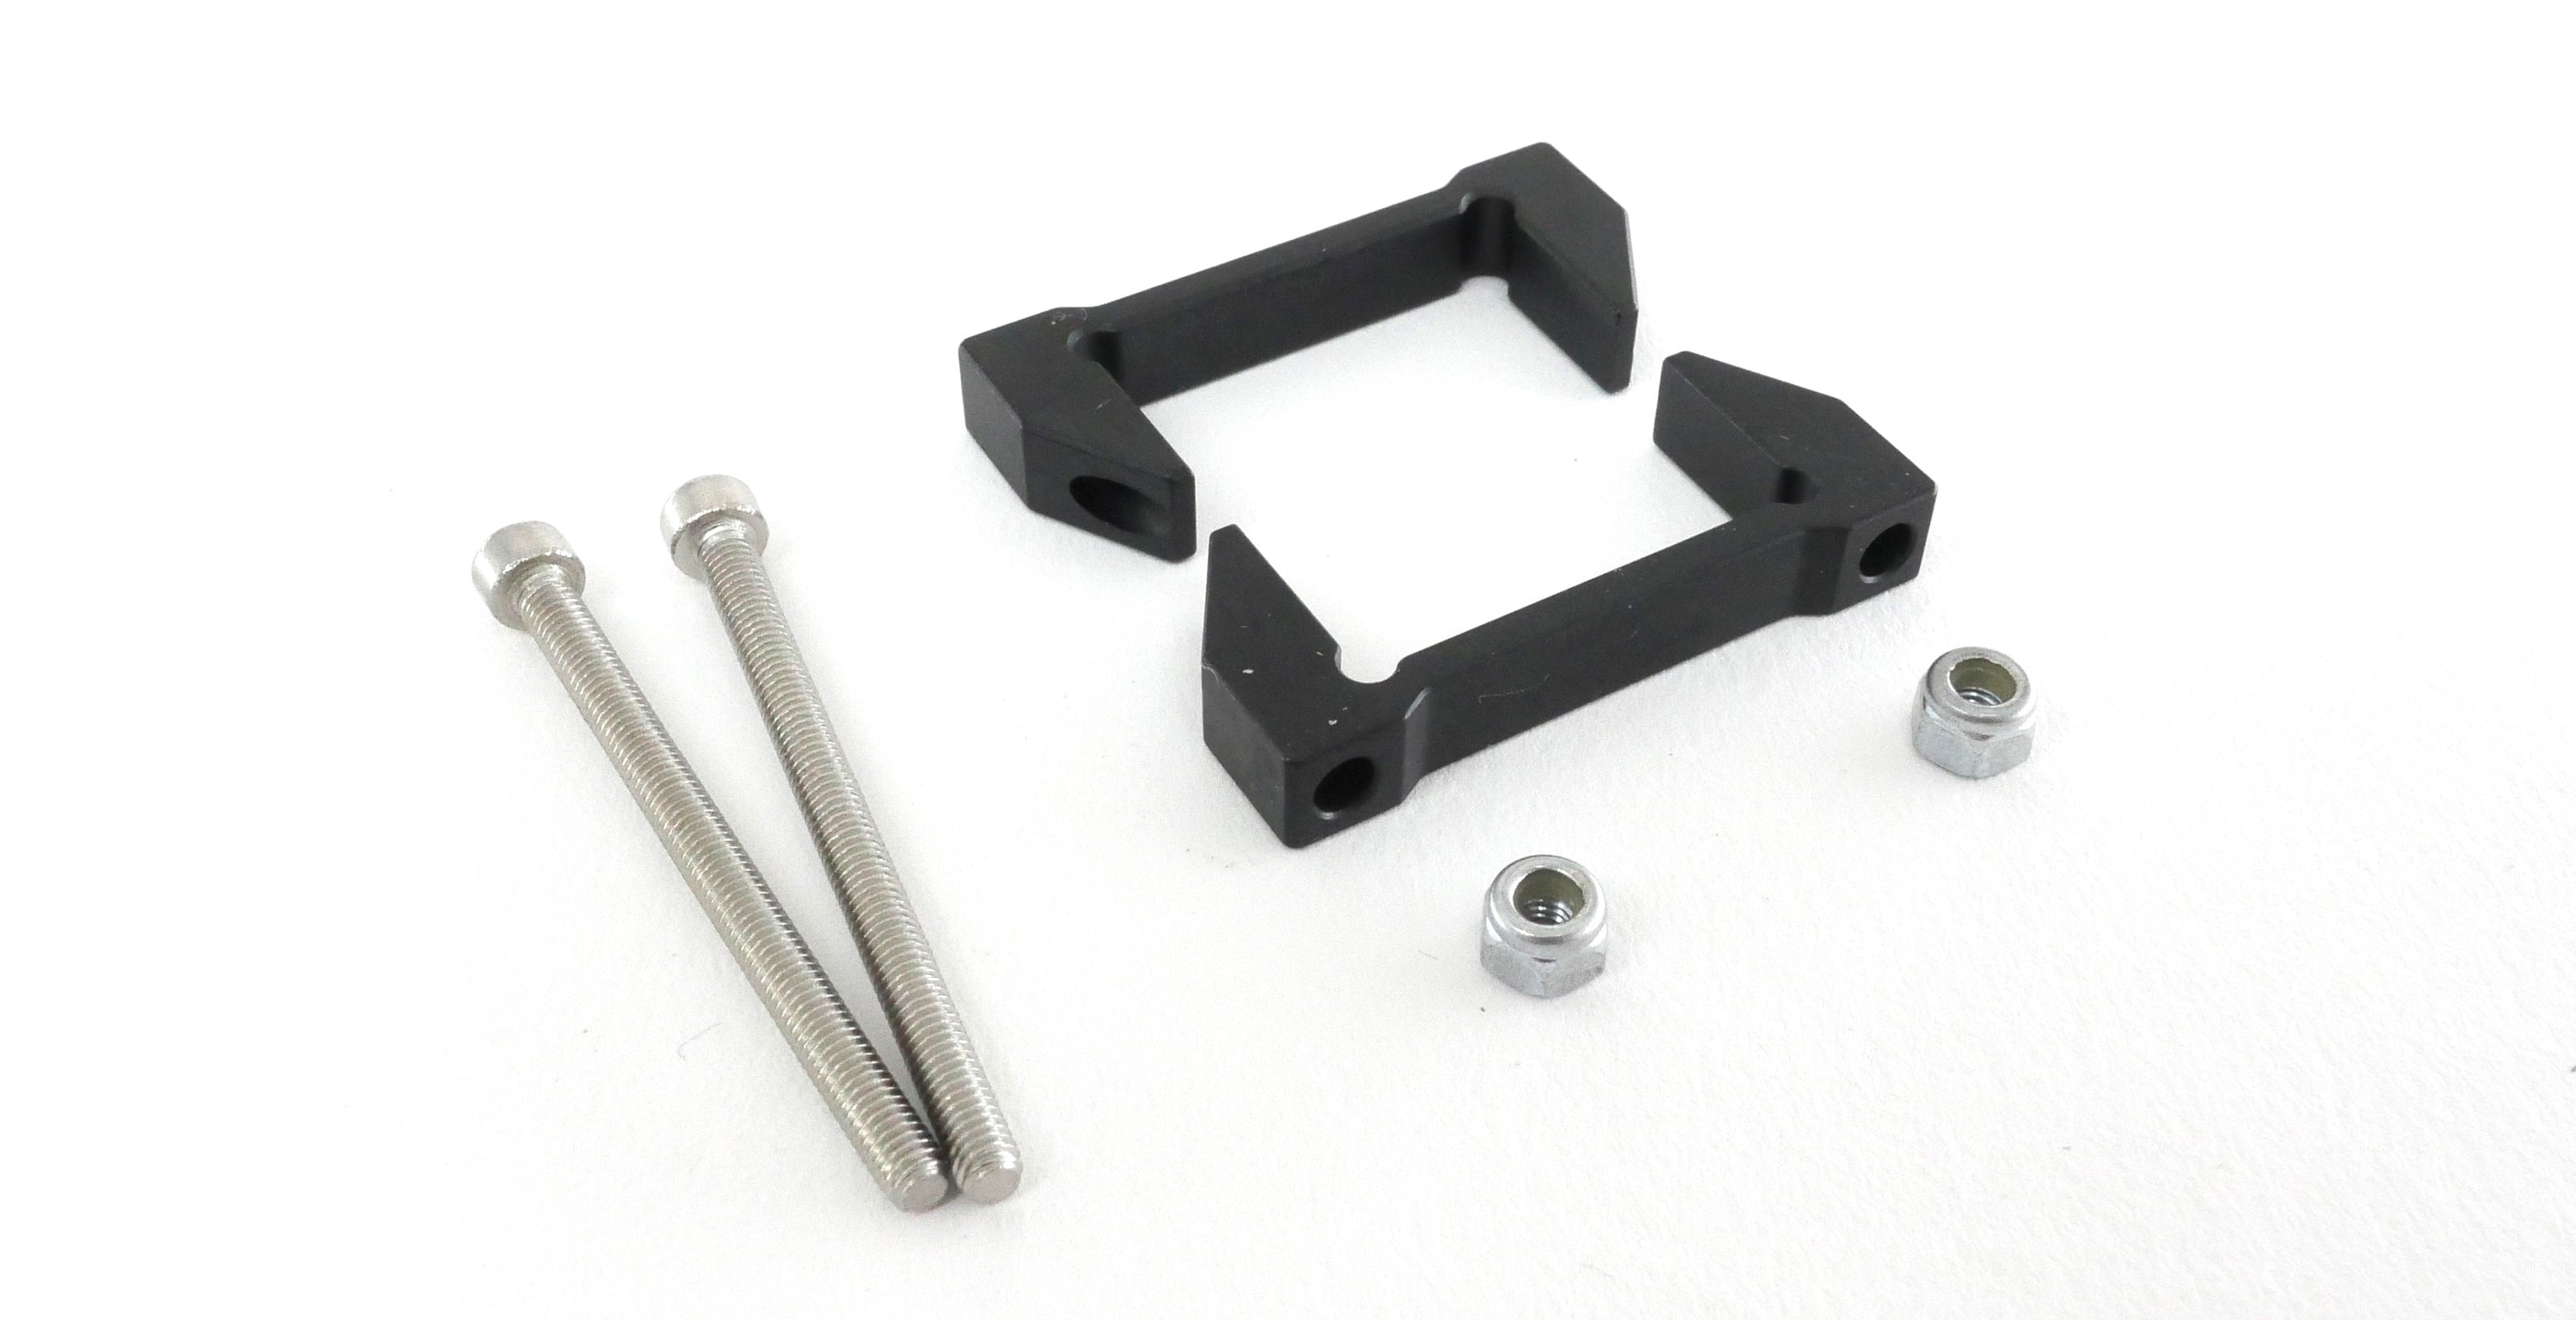 Spare Aluminum Tube Clamp Pair (with screws/nuts